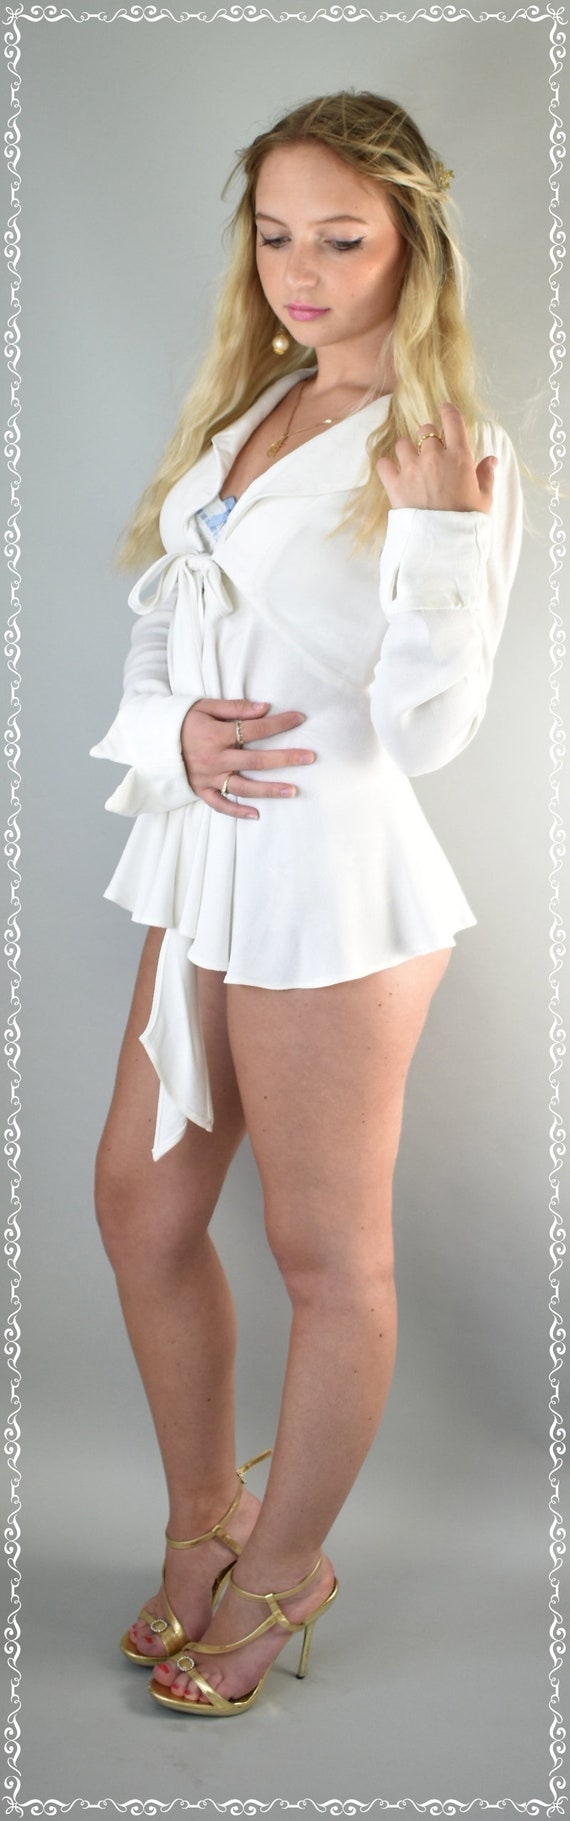 Ossie Clark Moss crepe ivory top 70's small - image 5